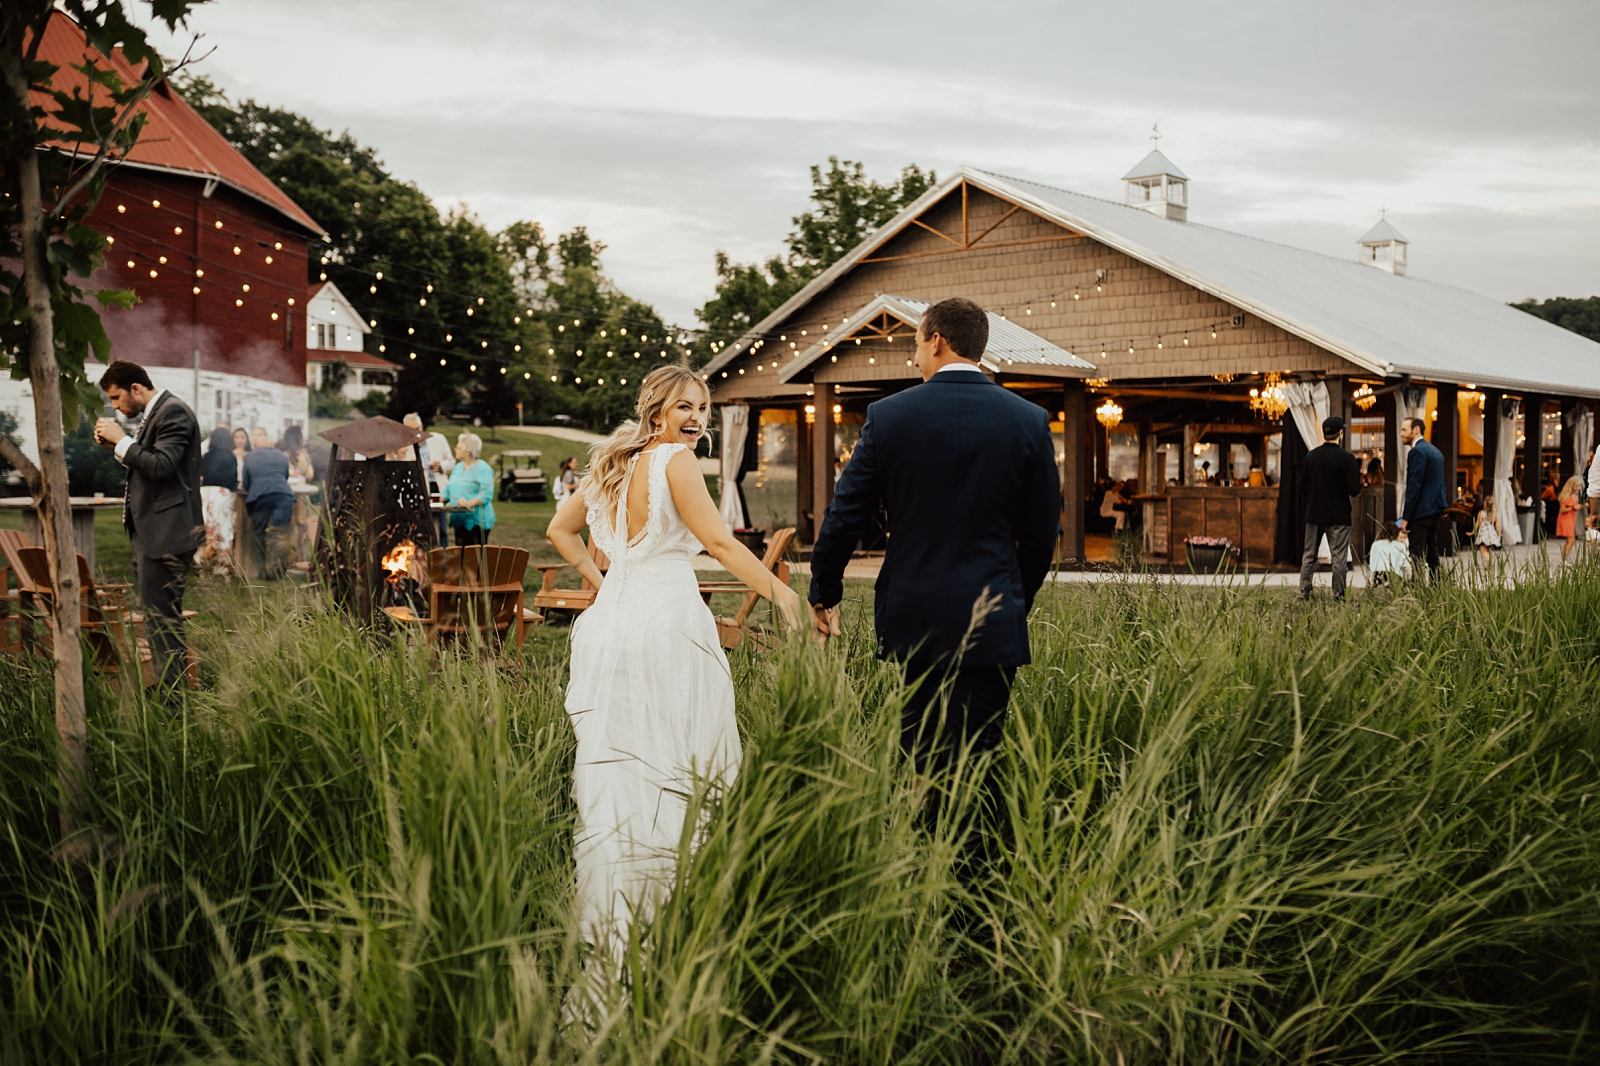 Vanessa & Michael Boho Chic Hidden Meadow & Barn Wedding in Pepin, WI_0610.jpg